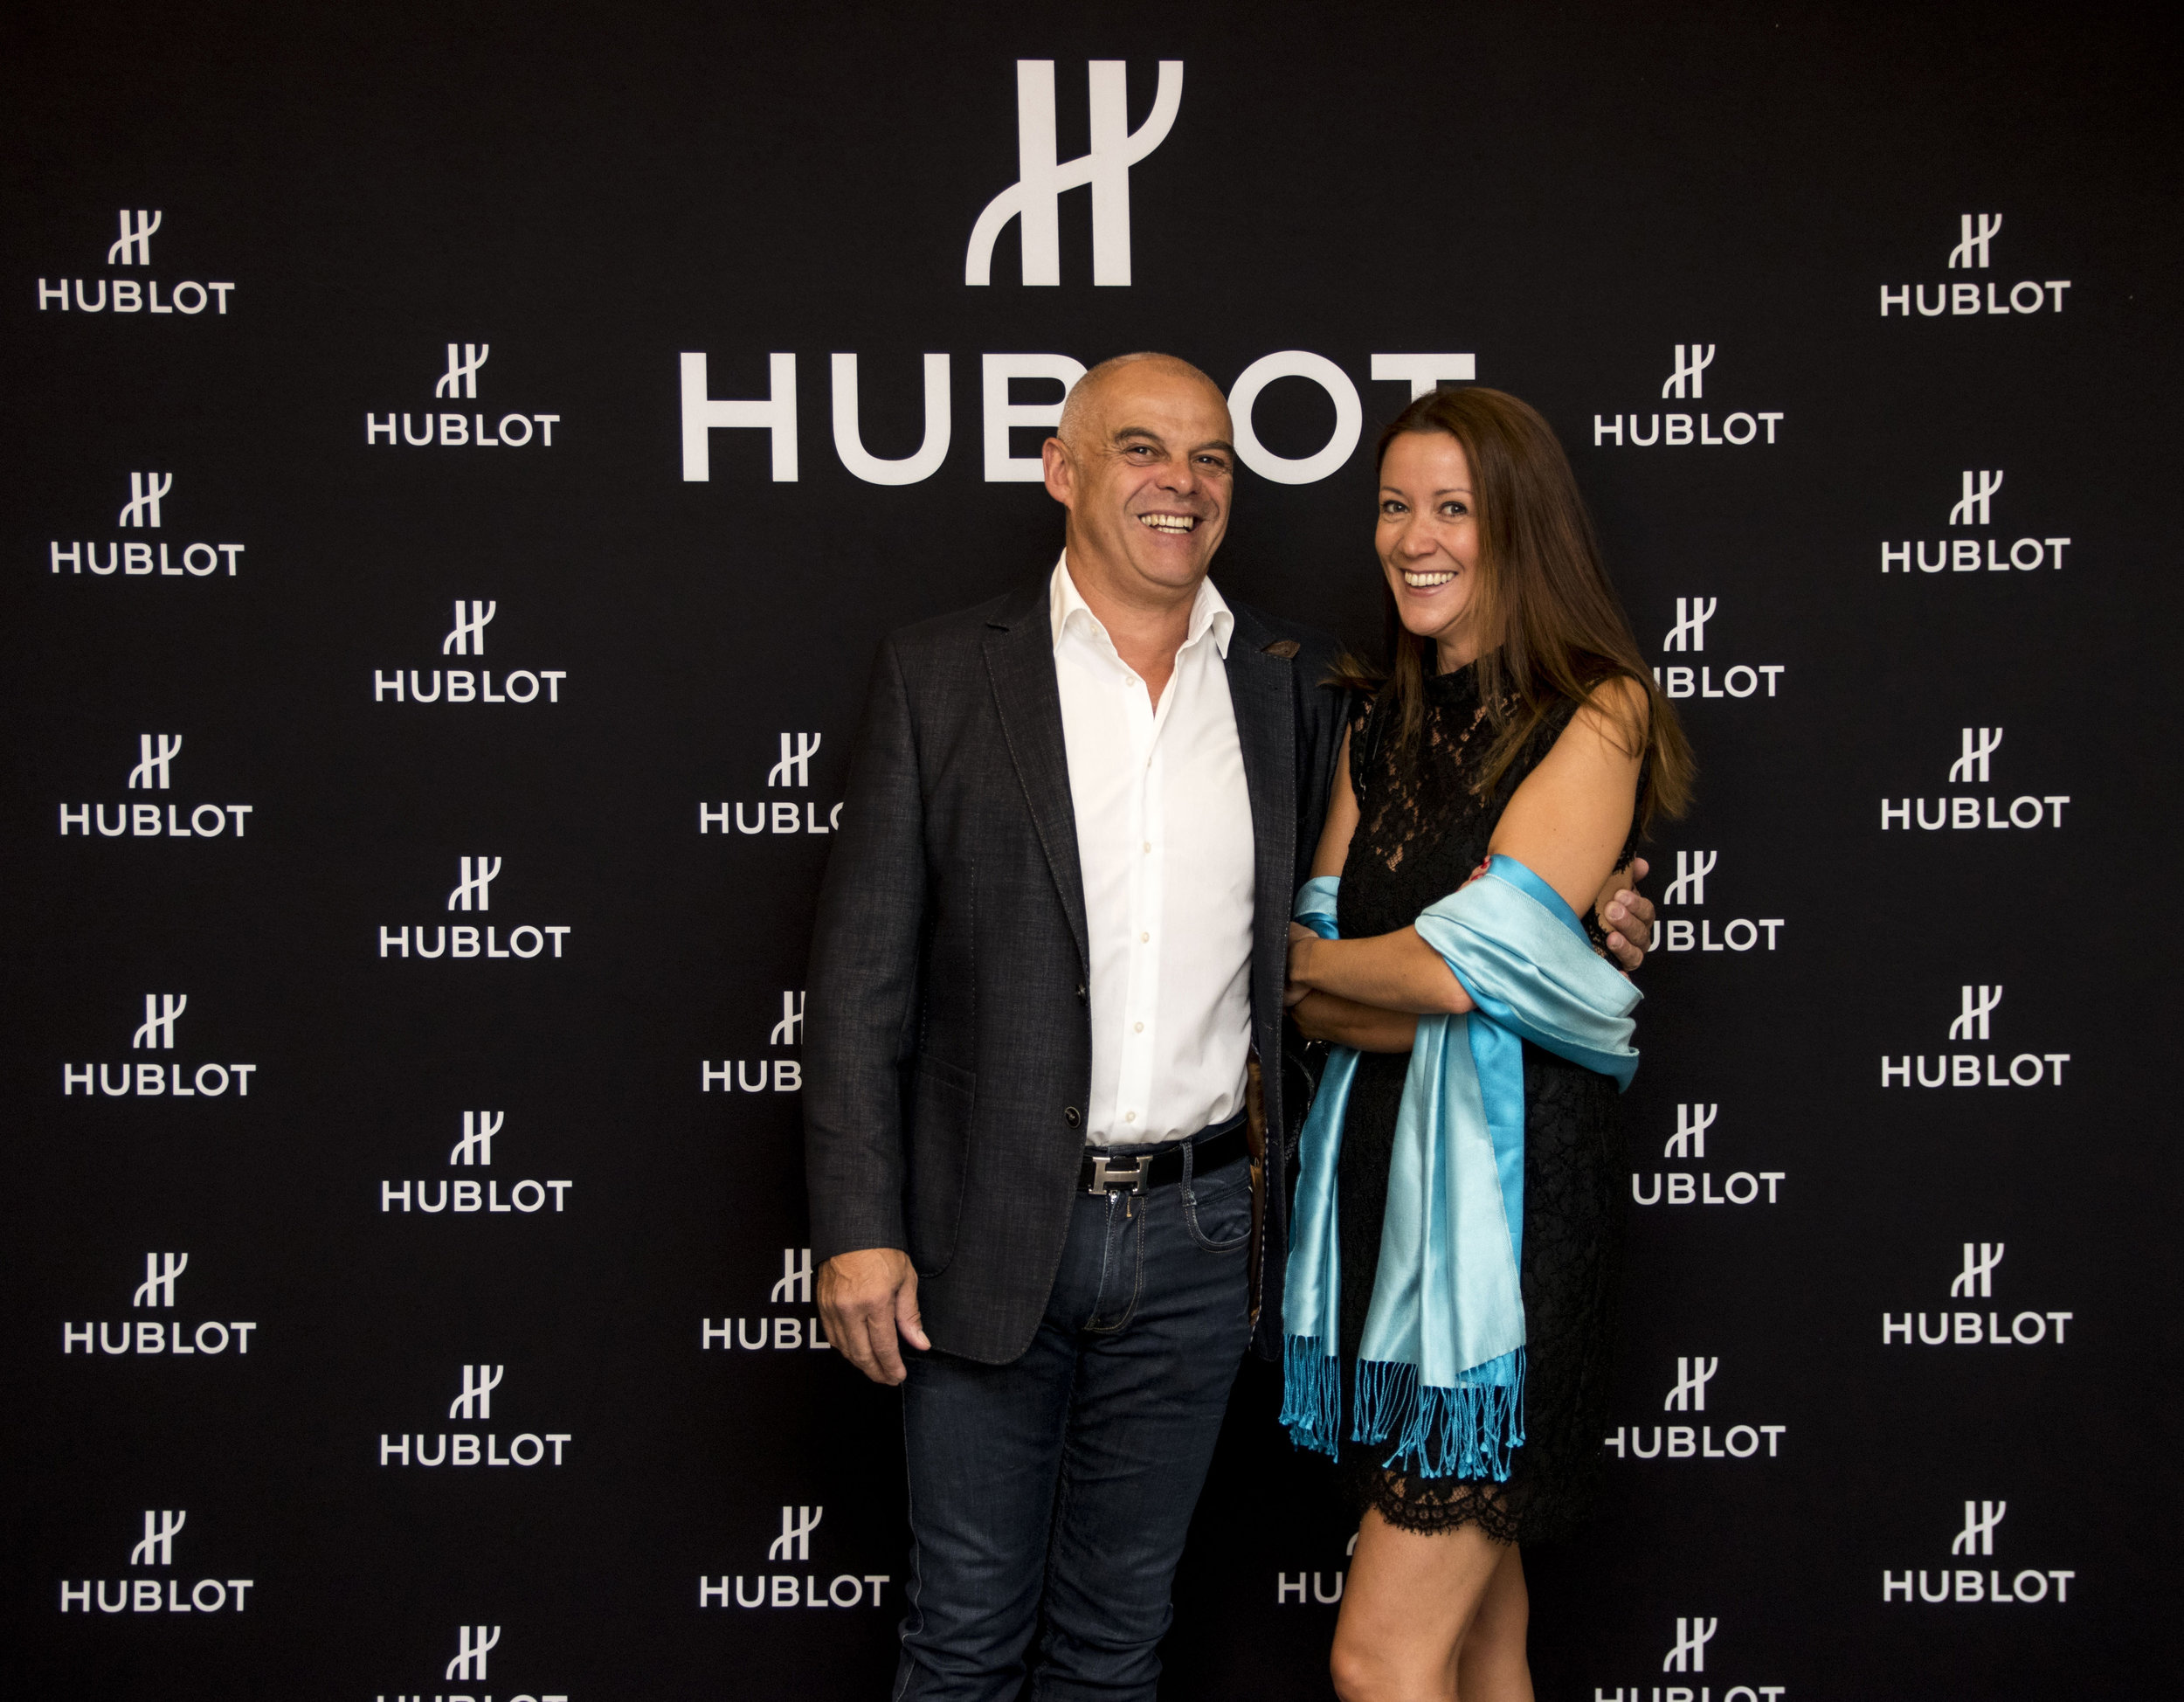 luxurygroupswitzerland_marcferrero_hublot_web035.jpg